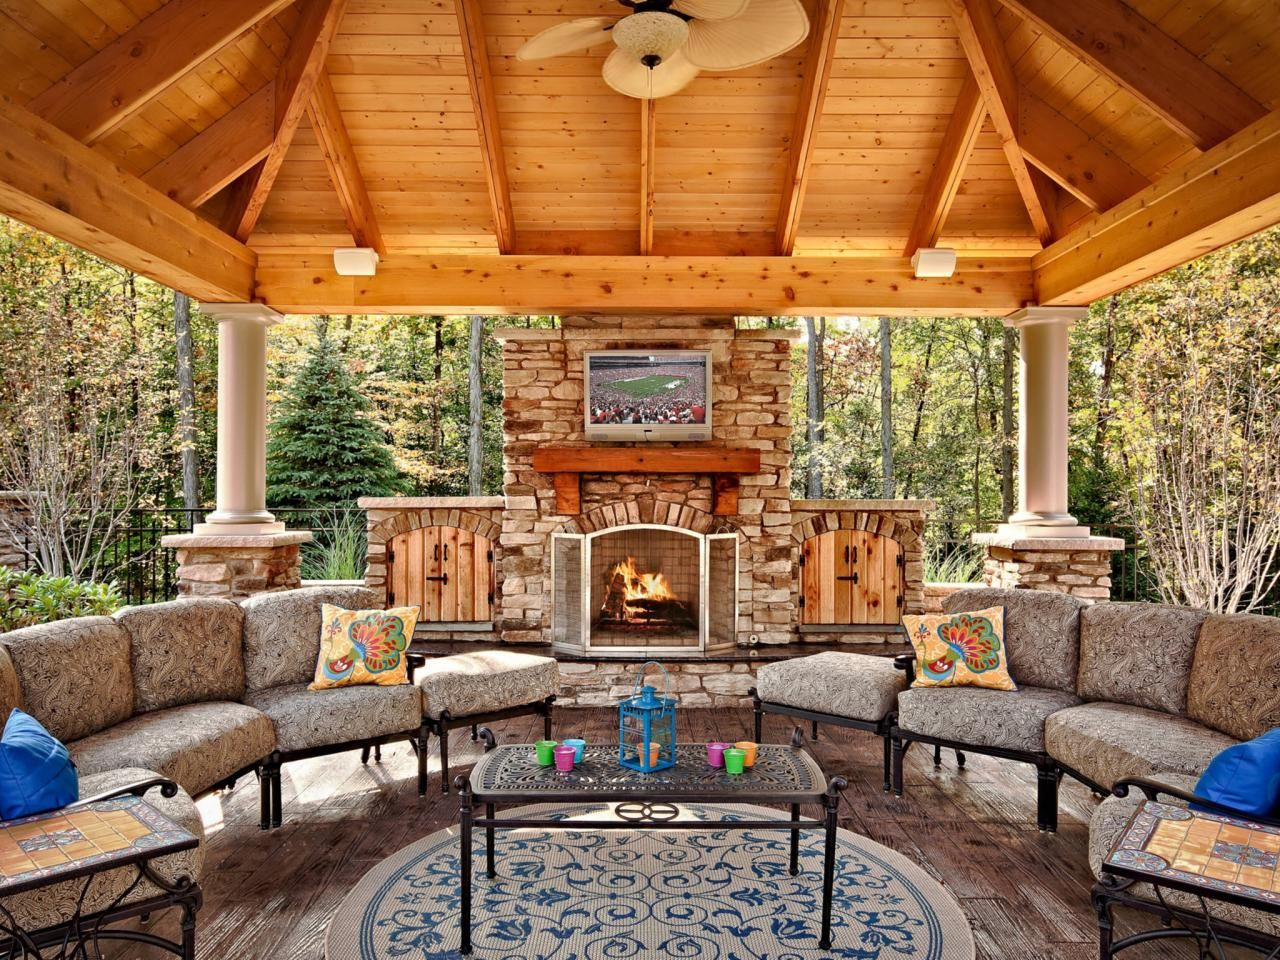 20 Outdoor Rooms with Fireplaces - Interior Paint Color ... on Outdoor Living Contractors Near Me id=99158